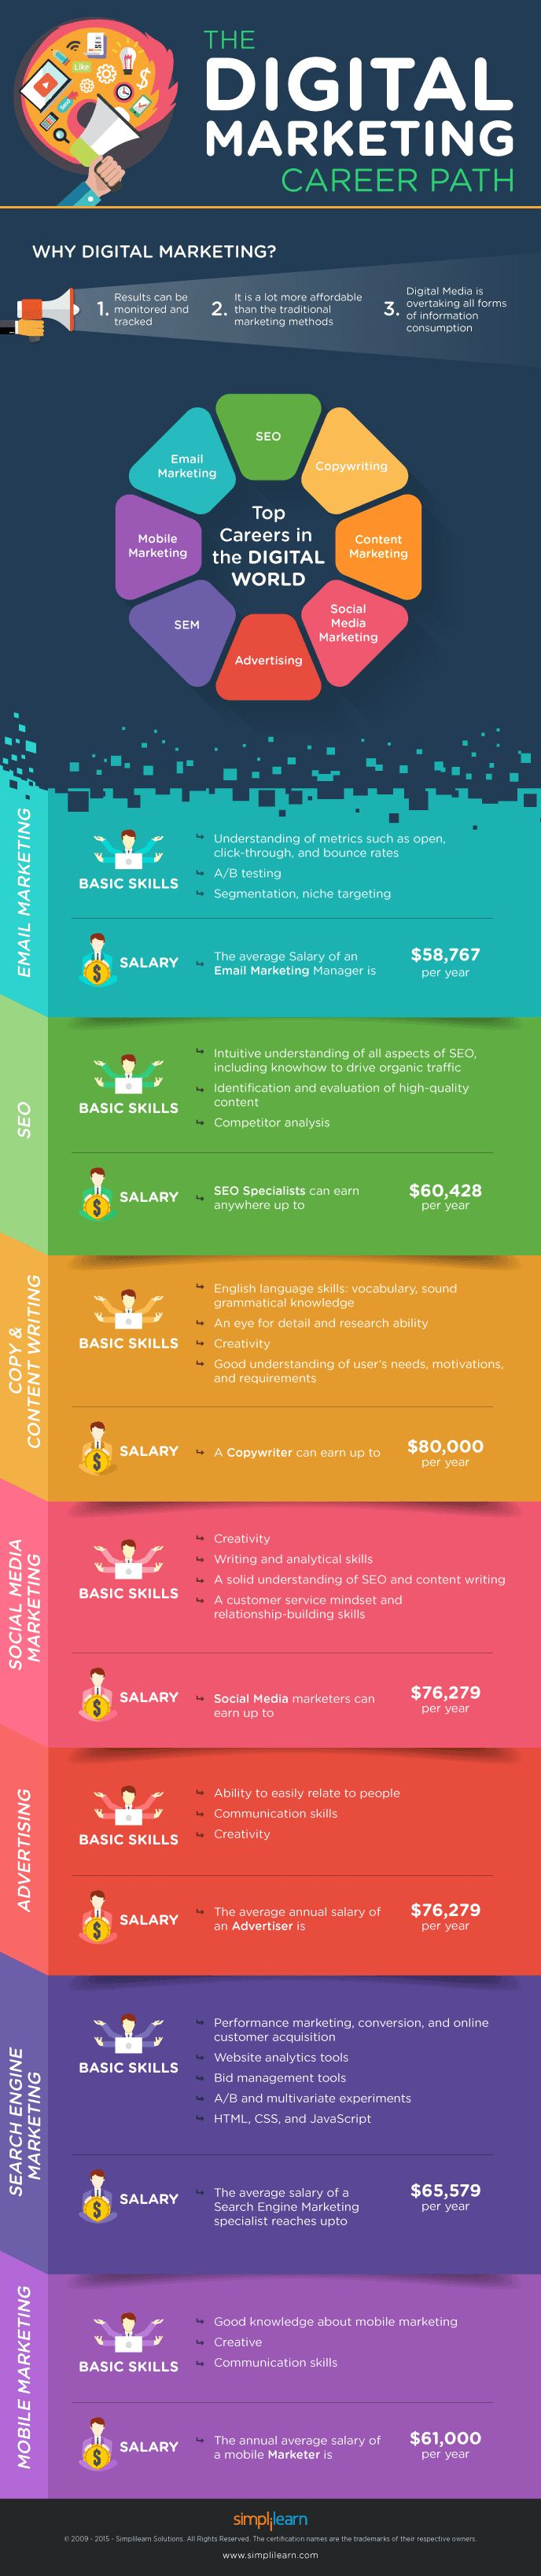 How to launch a Stellar Career in Digital Marketing? - #infographic